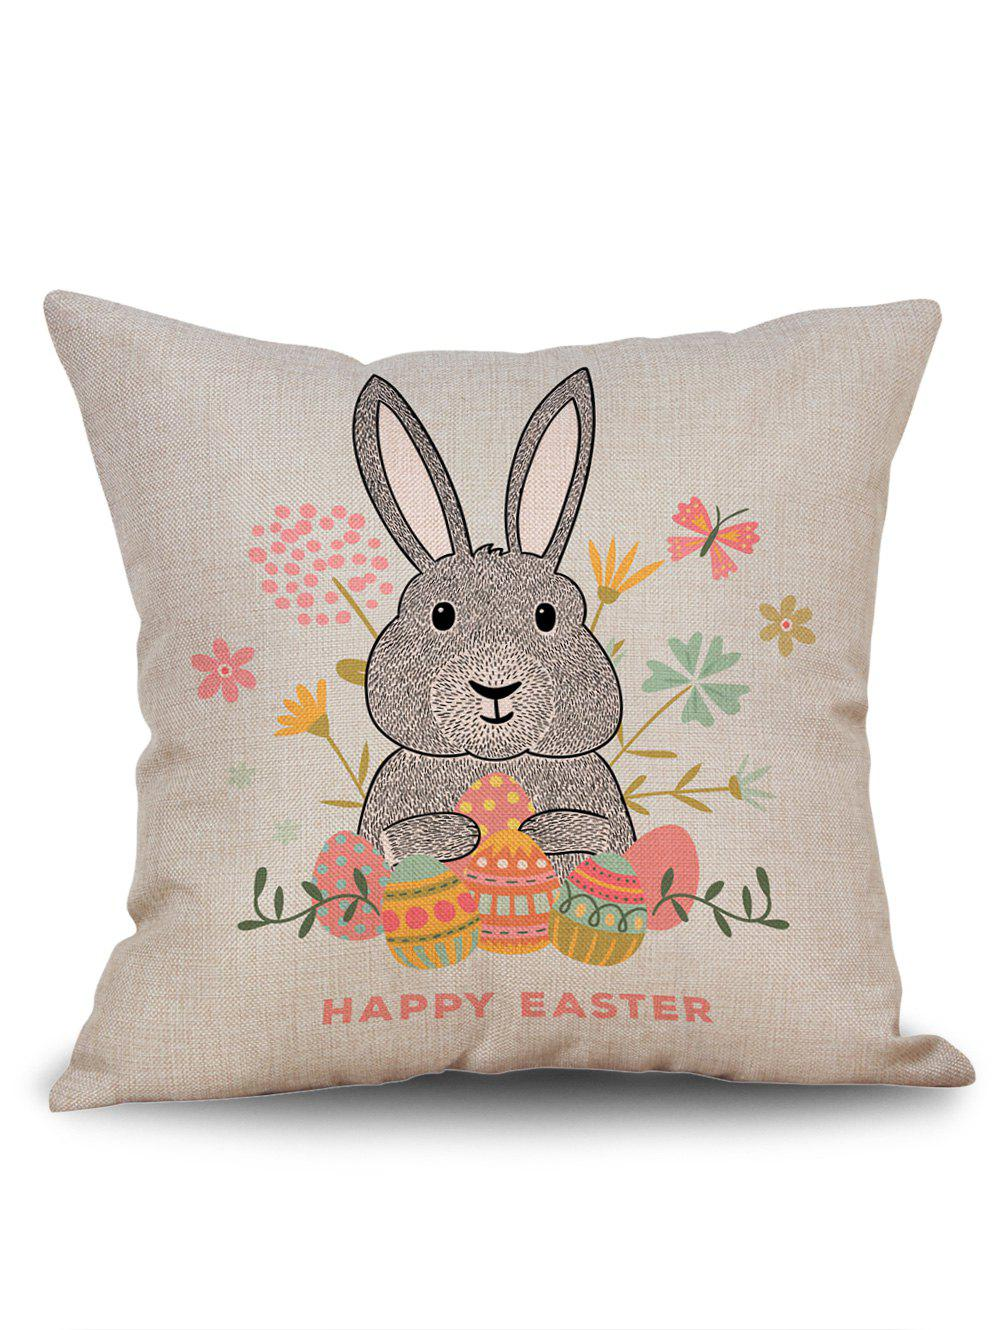 2018 Bunny Happy Easter Egg Print Decorative Pillow Cover GRAY W INCH L INCH In Decorative ...